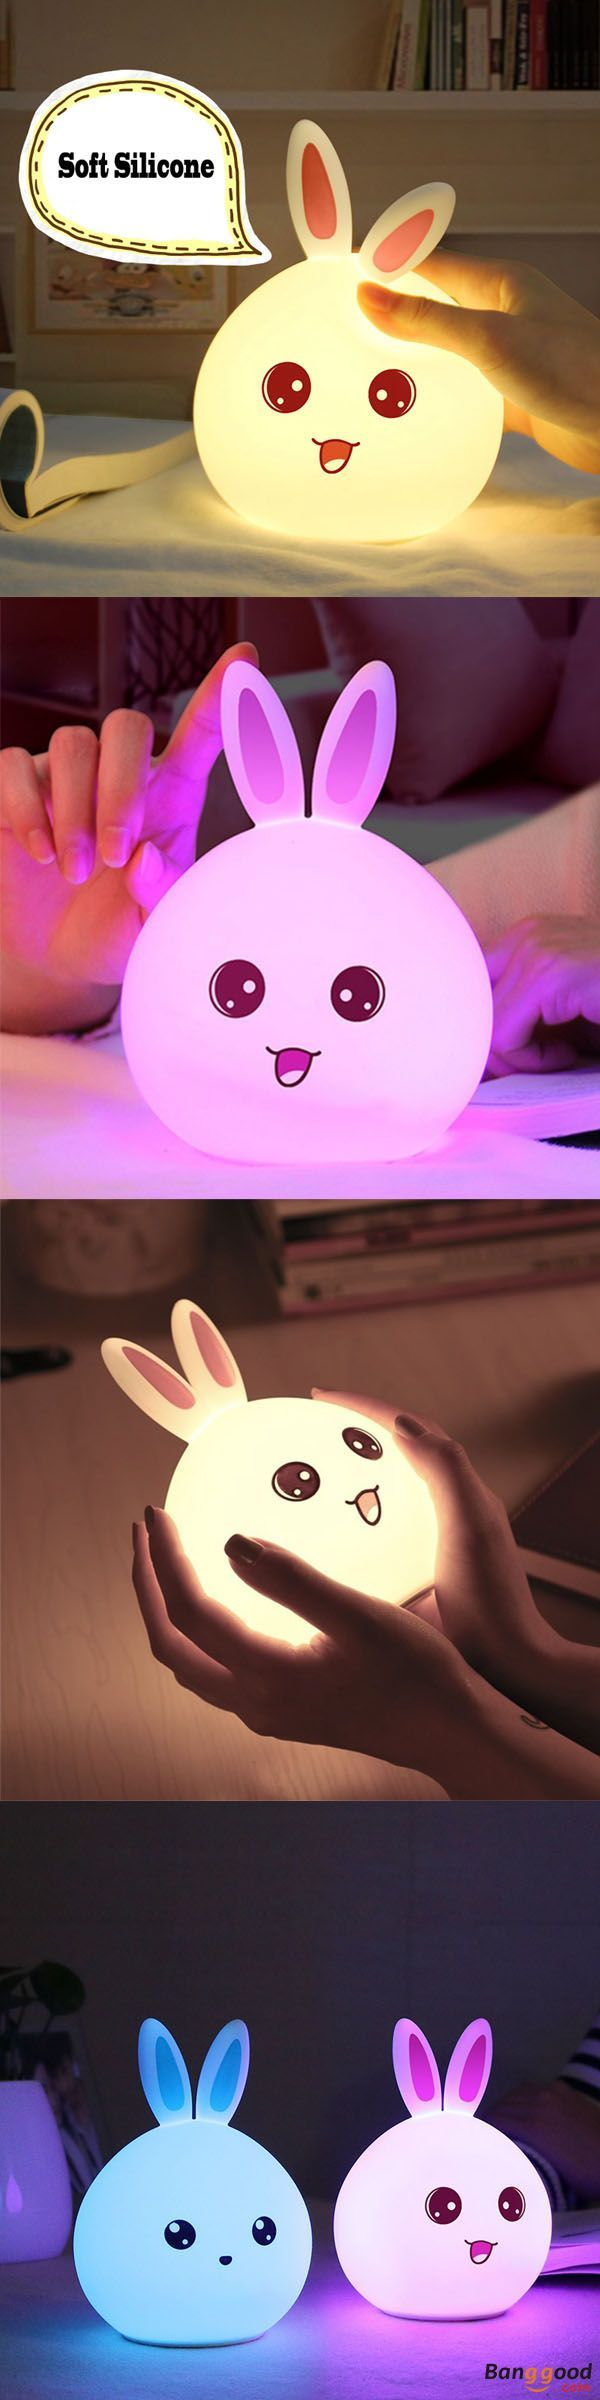 US$13.29 + Free shipping. Color changing light, silicone rabbit night light, remote control lamp, rechargeable bedside lamp. Ear-color :Blue / Pink. Material: silicone.